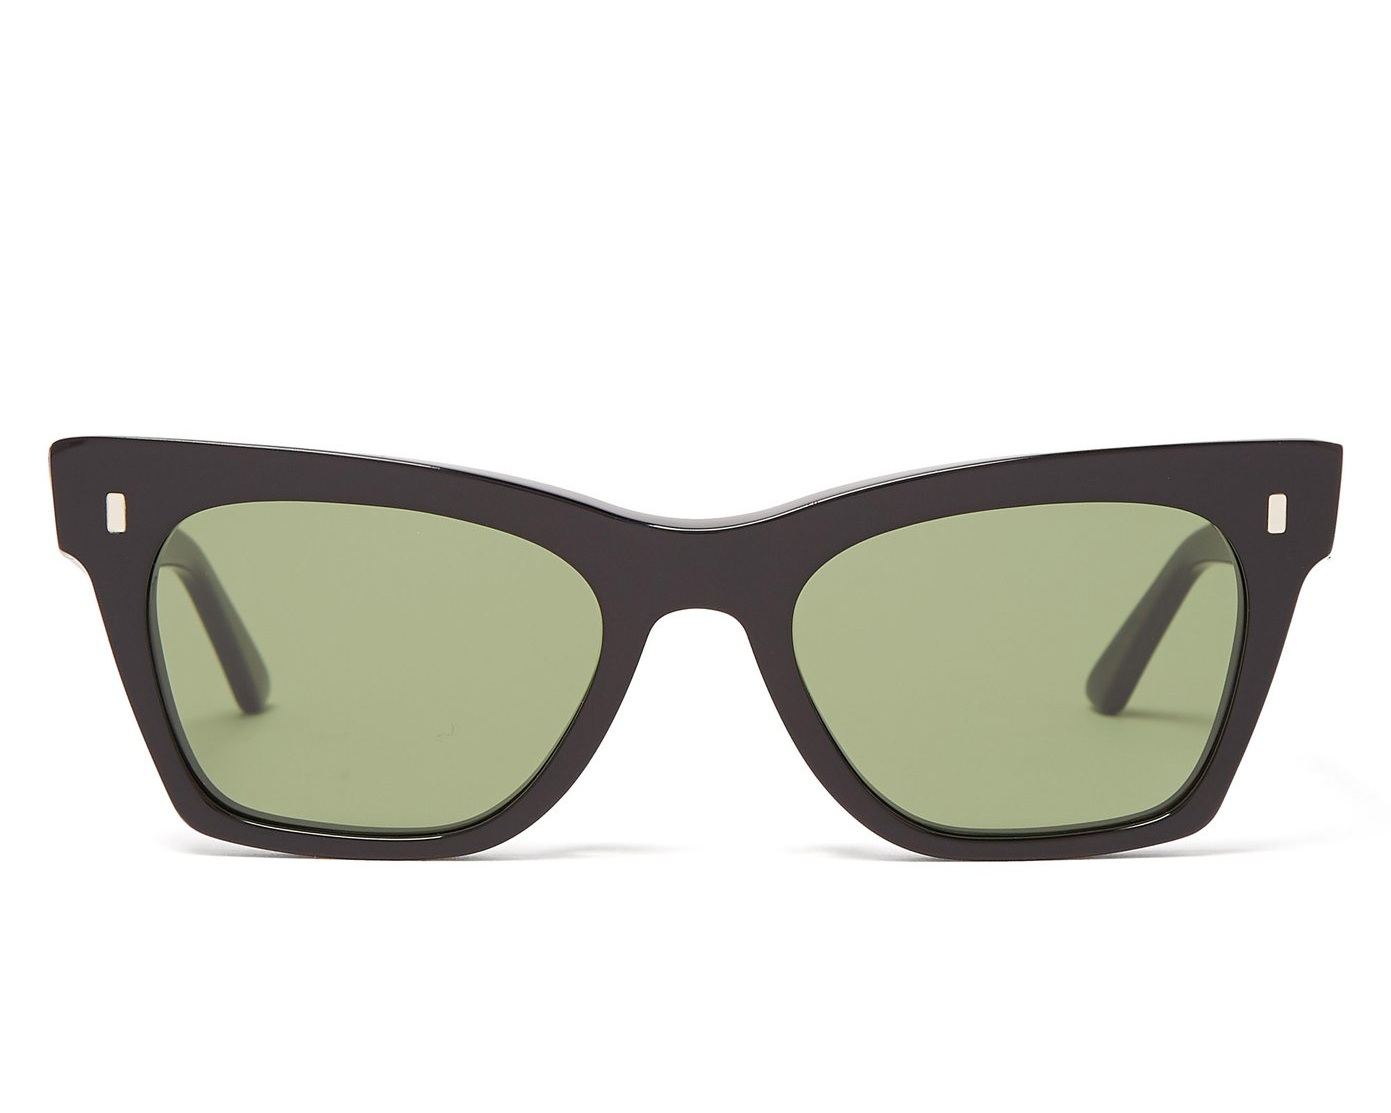 CÉLINE - it's the last chance to stock up on old Céline eyewear, and this pair of face-framing cat-eye shades are at the top of my list.